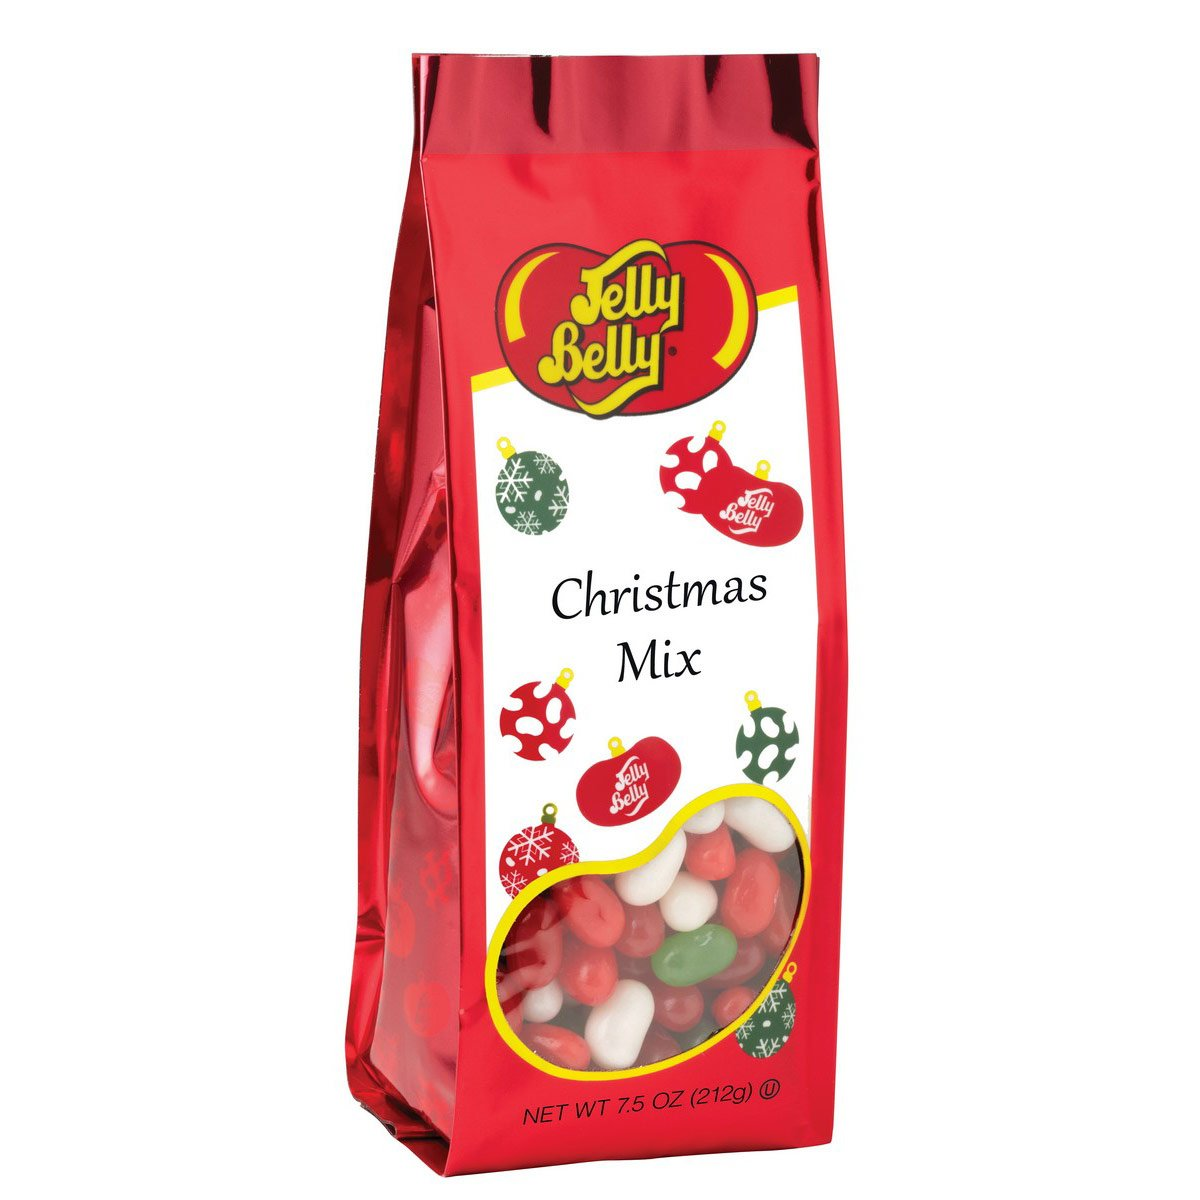 Bag of Jelly Belly red and green jelly beans in red packaging